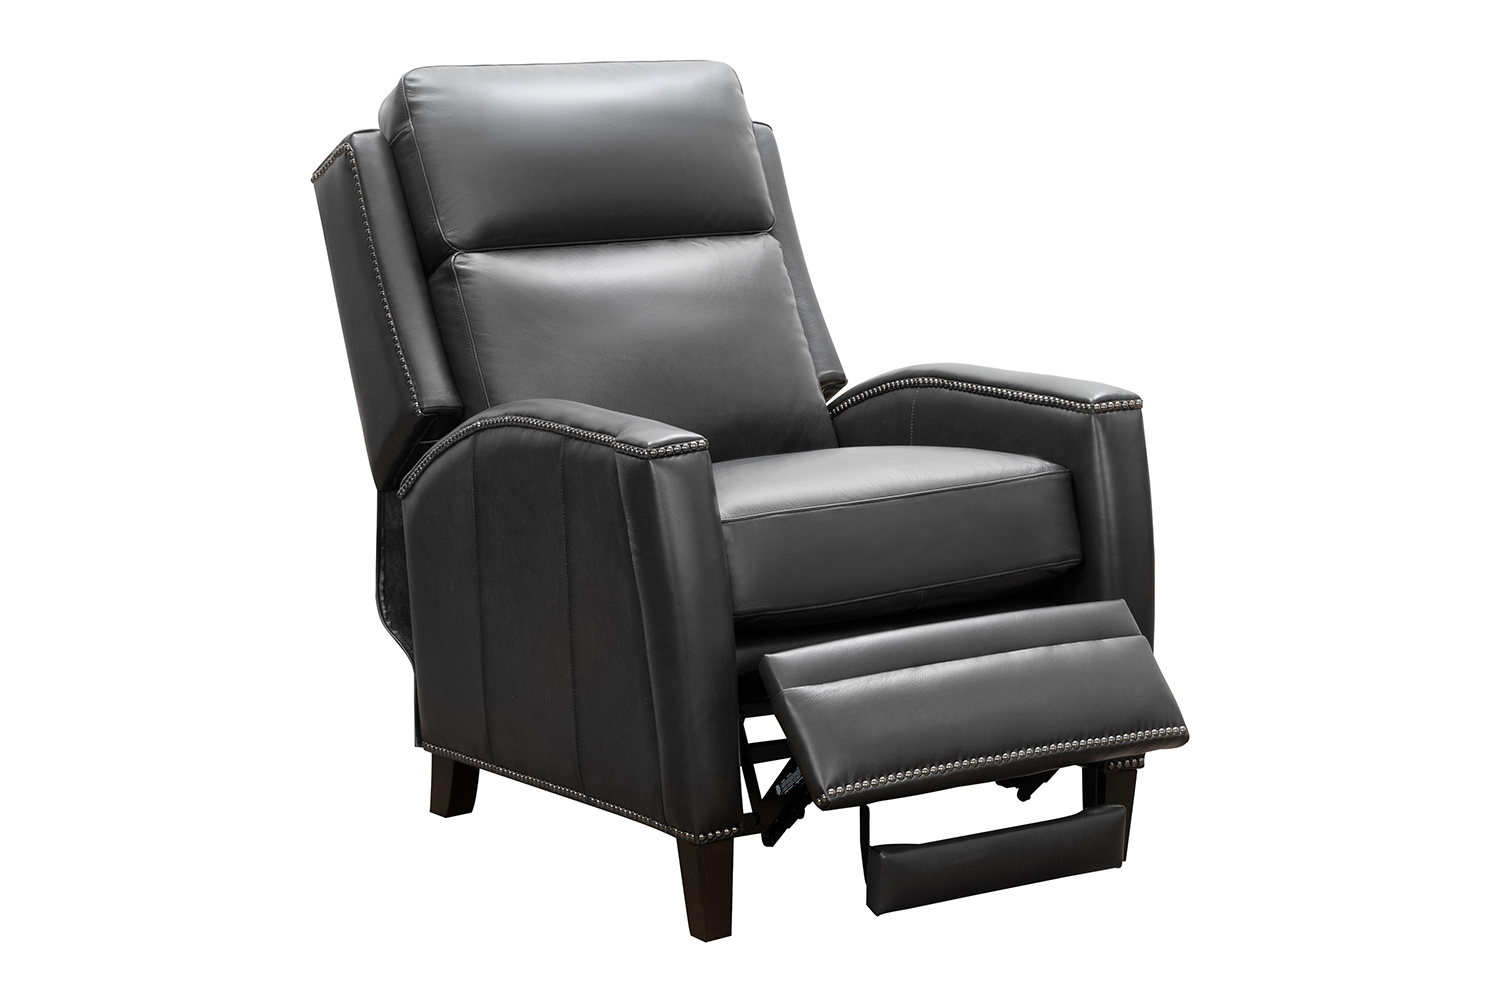 Barcalounger Nolan Recliner Chair - Shoreham Gray/All Leather